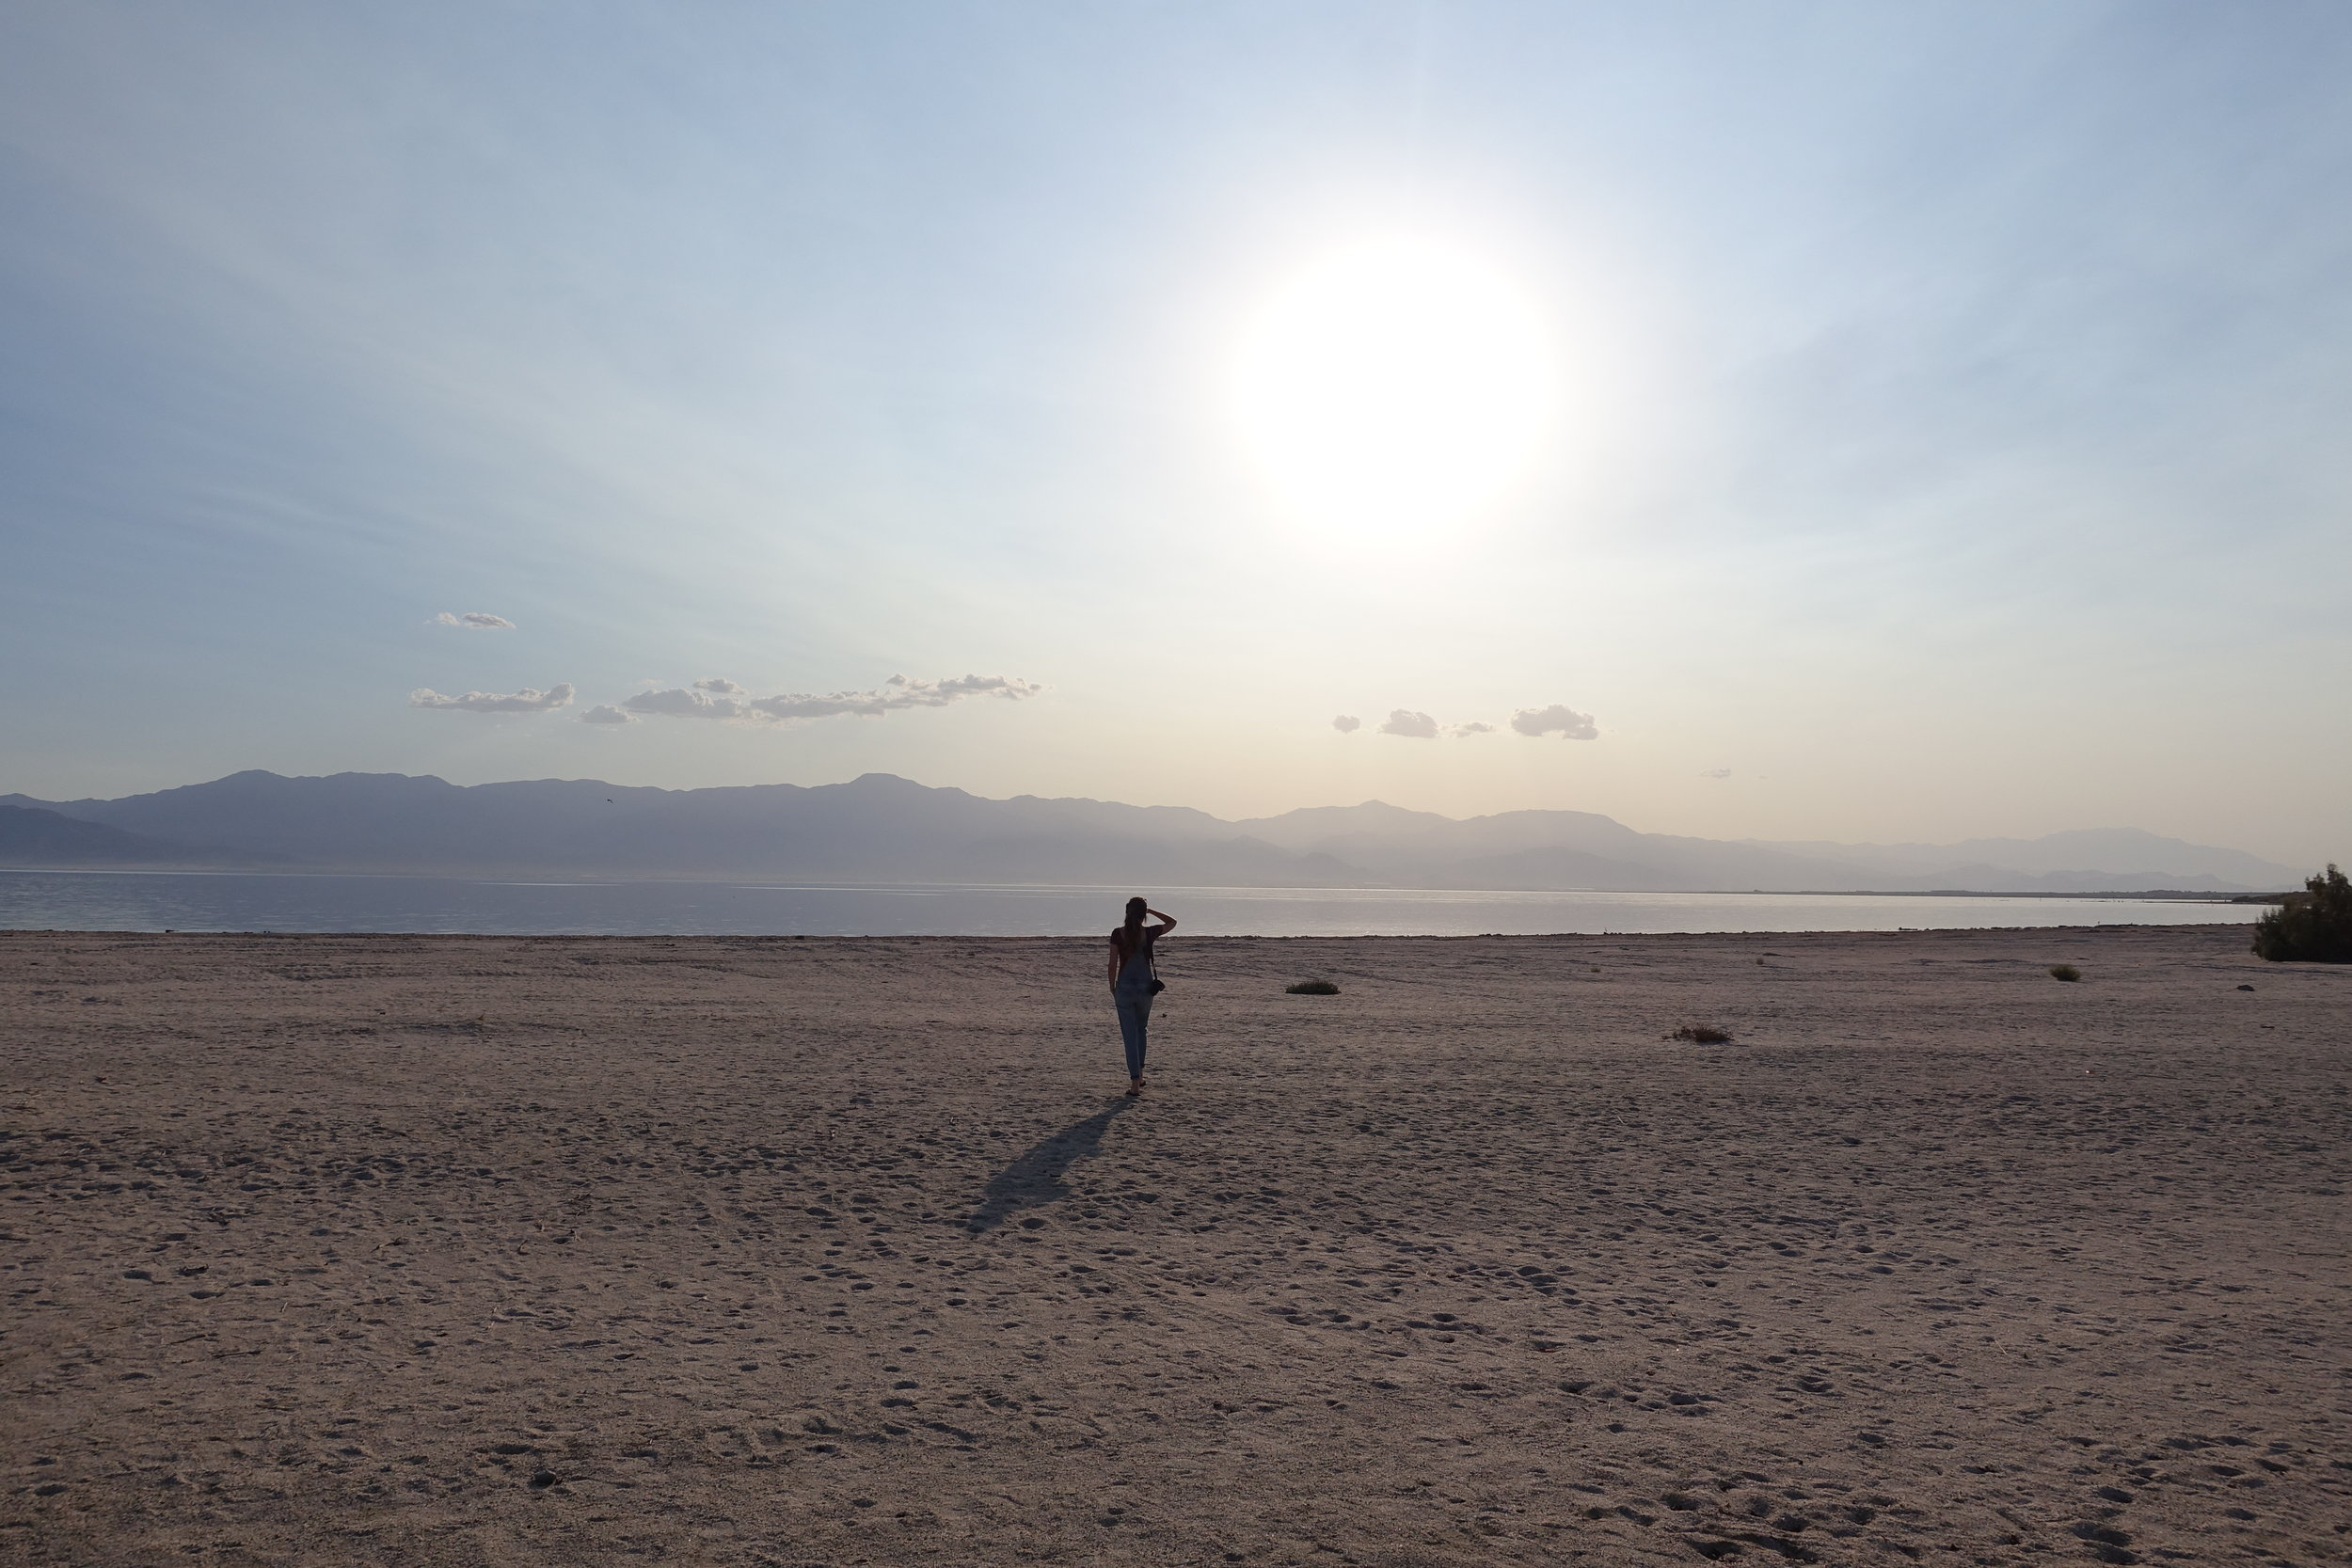 8. the smell of salton sea. probably should not be listed as the best of but definitely one to remember. Salton City, CA.